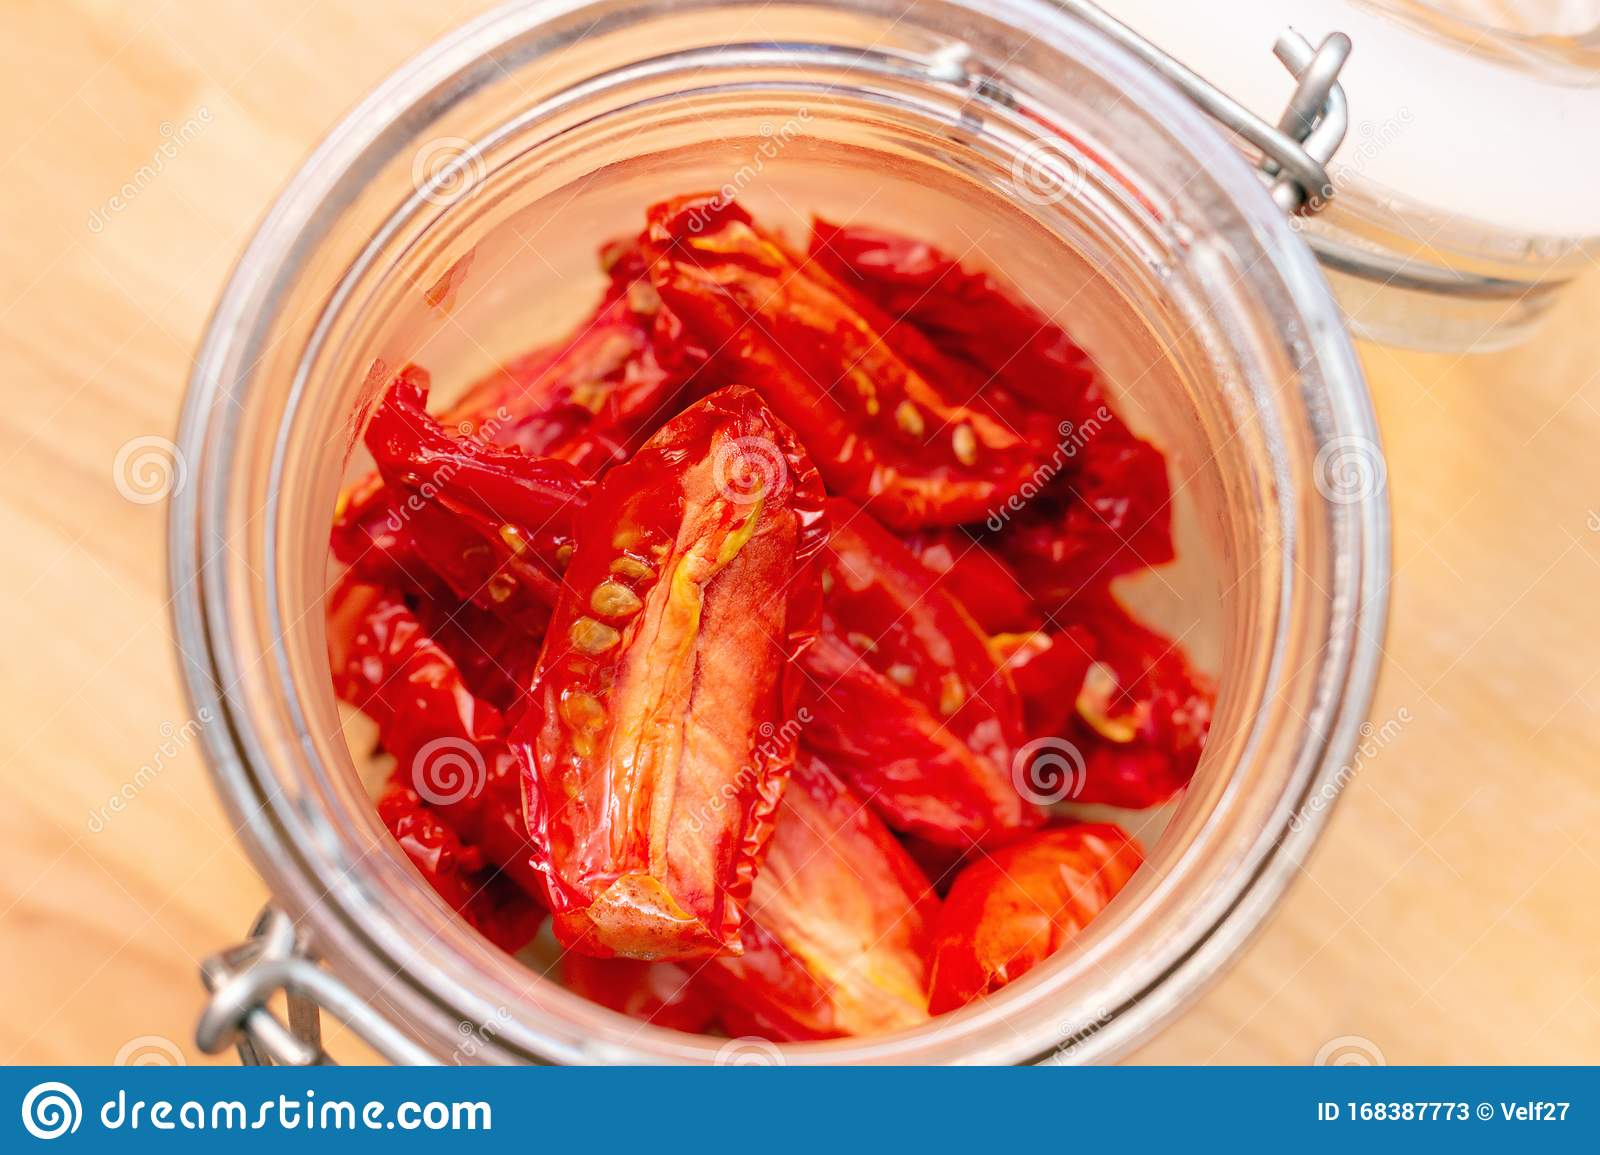 Homemade Dried Red Tomatoes Slices With Basil Oregano Spices In A Glass Jar Traditional Italian Mediterranean Kitchen Cuisine Stock Image Of 168387773